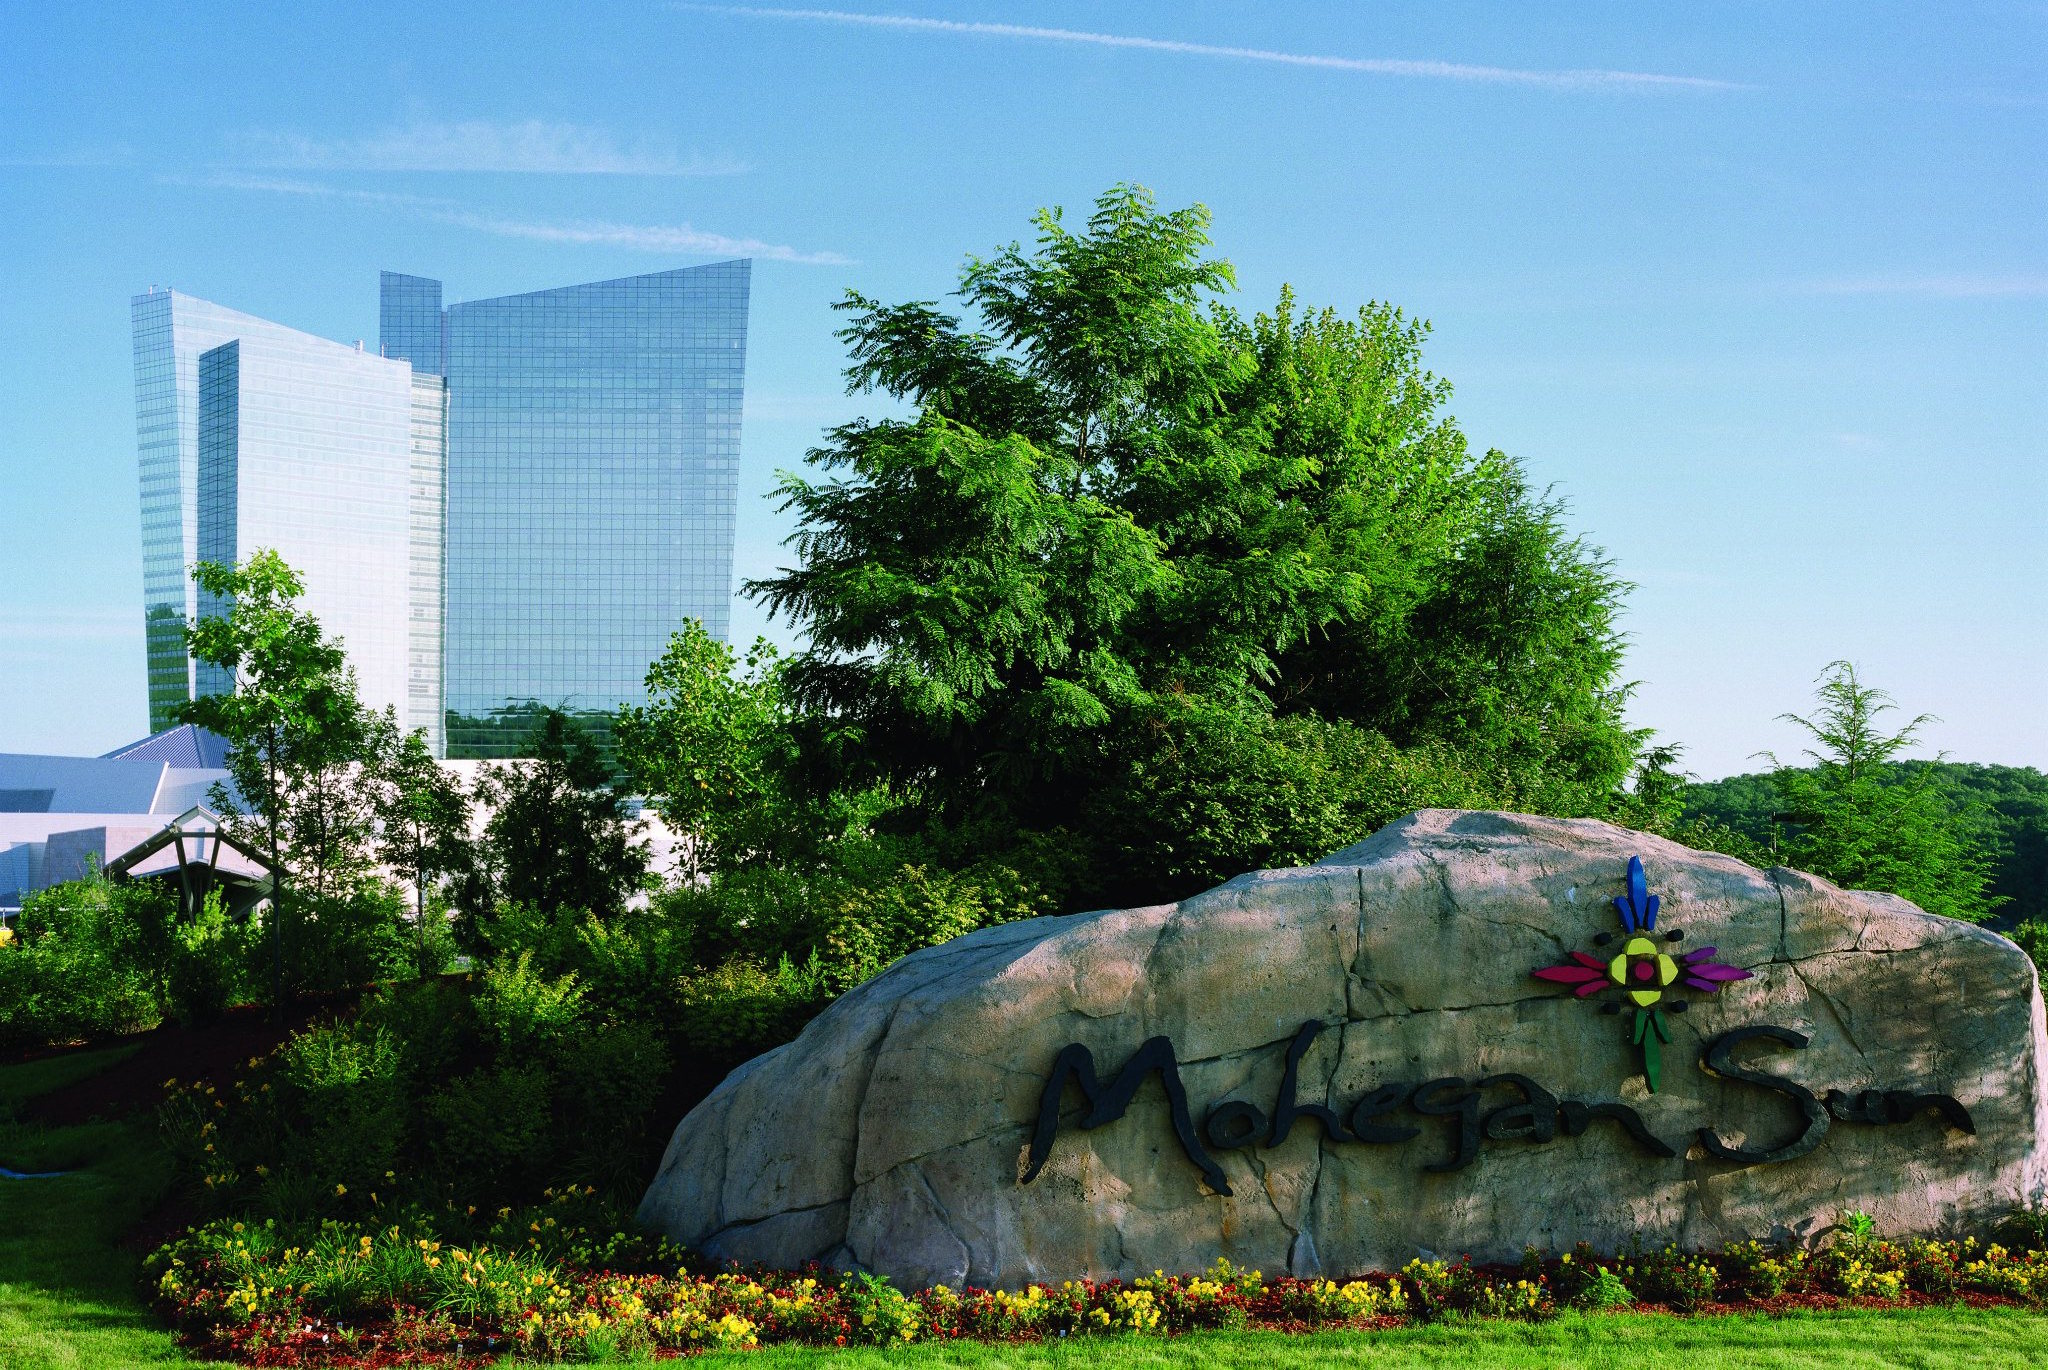 Connecticut tribes continue looking at sites for potential casino